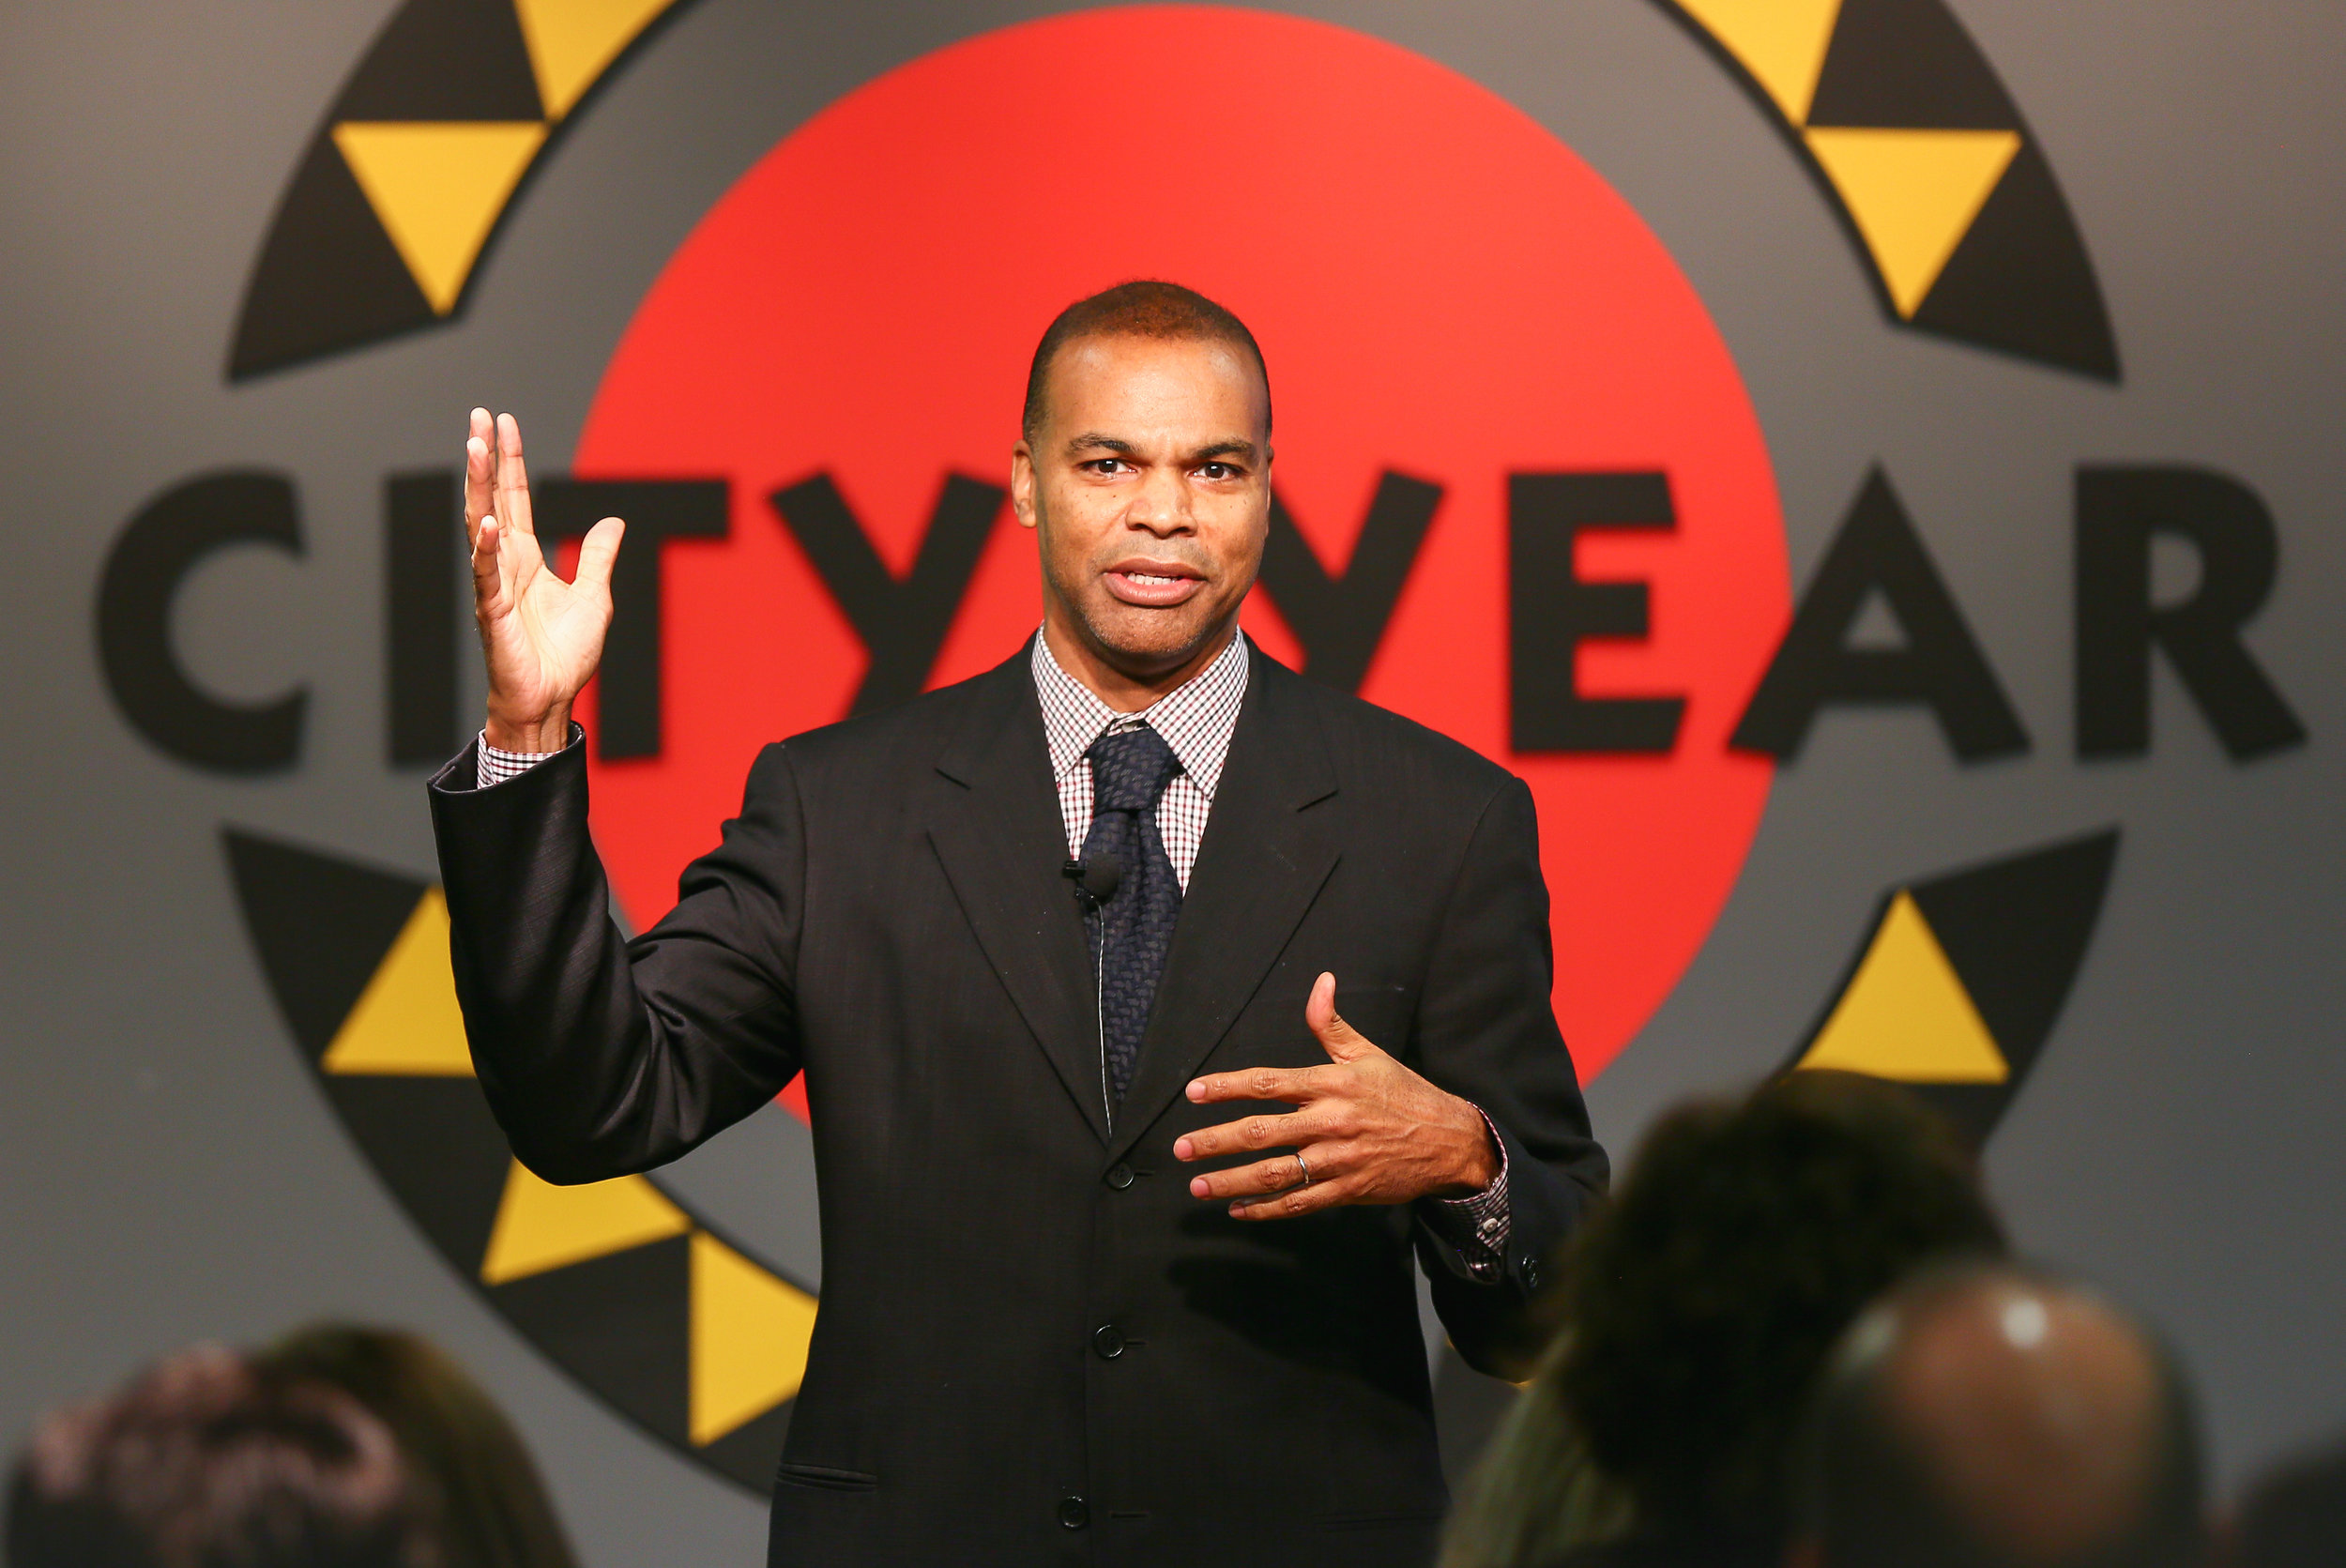 Coach Tommy Amaker presenting at the RJS Conference